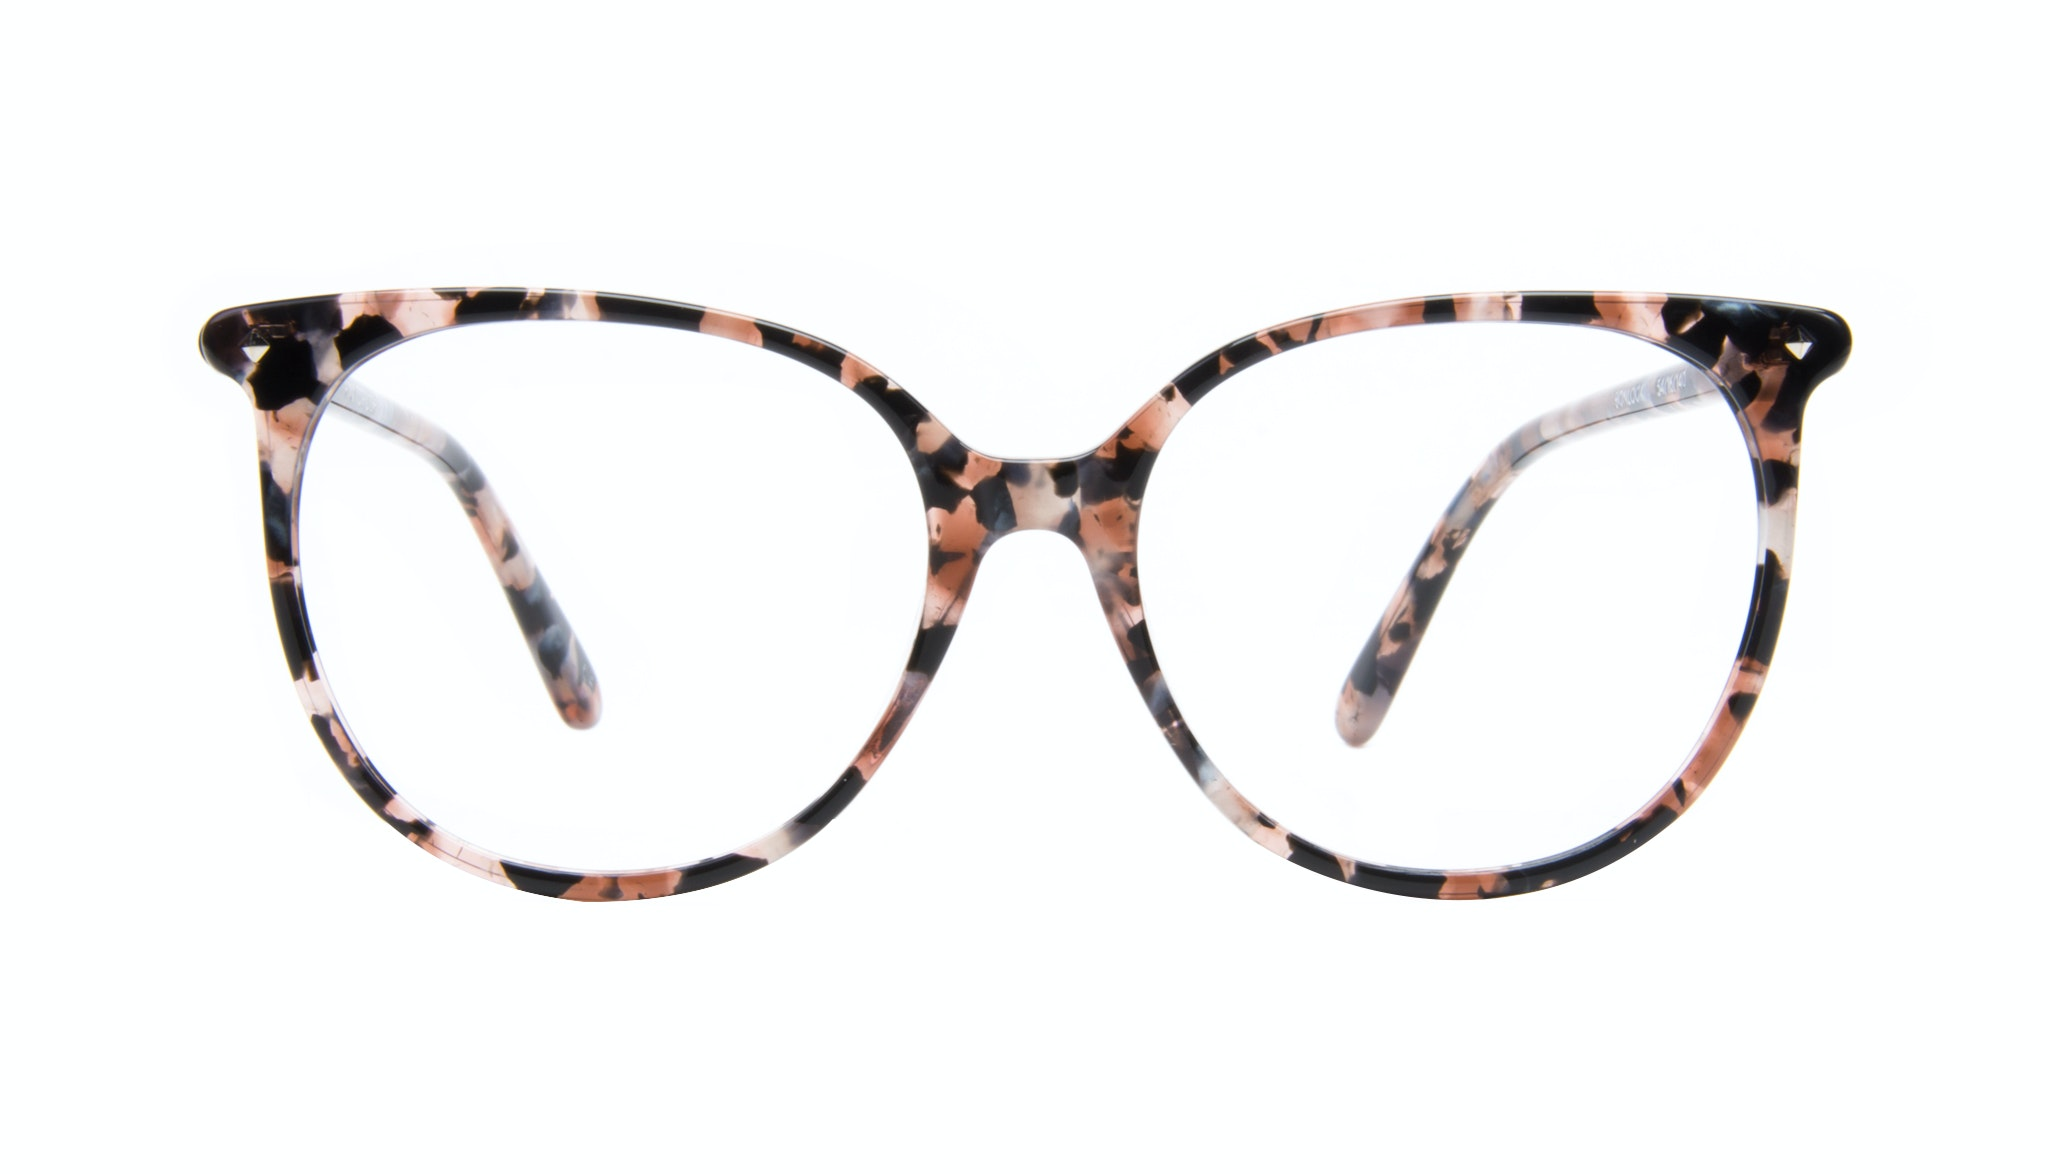 Affordable Fashion Glasses Cat Eye Square Eyeglasses Women Area Pink Tortoise Front